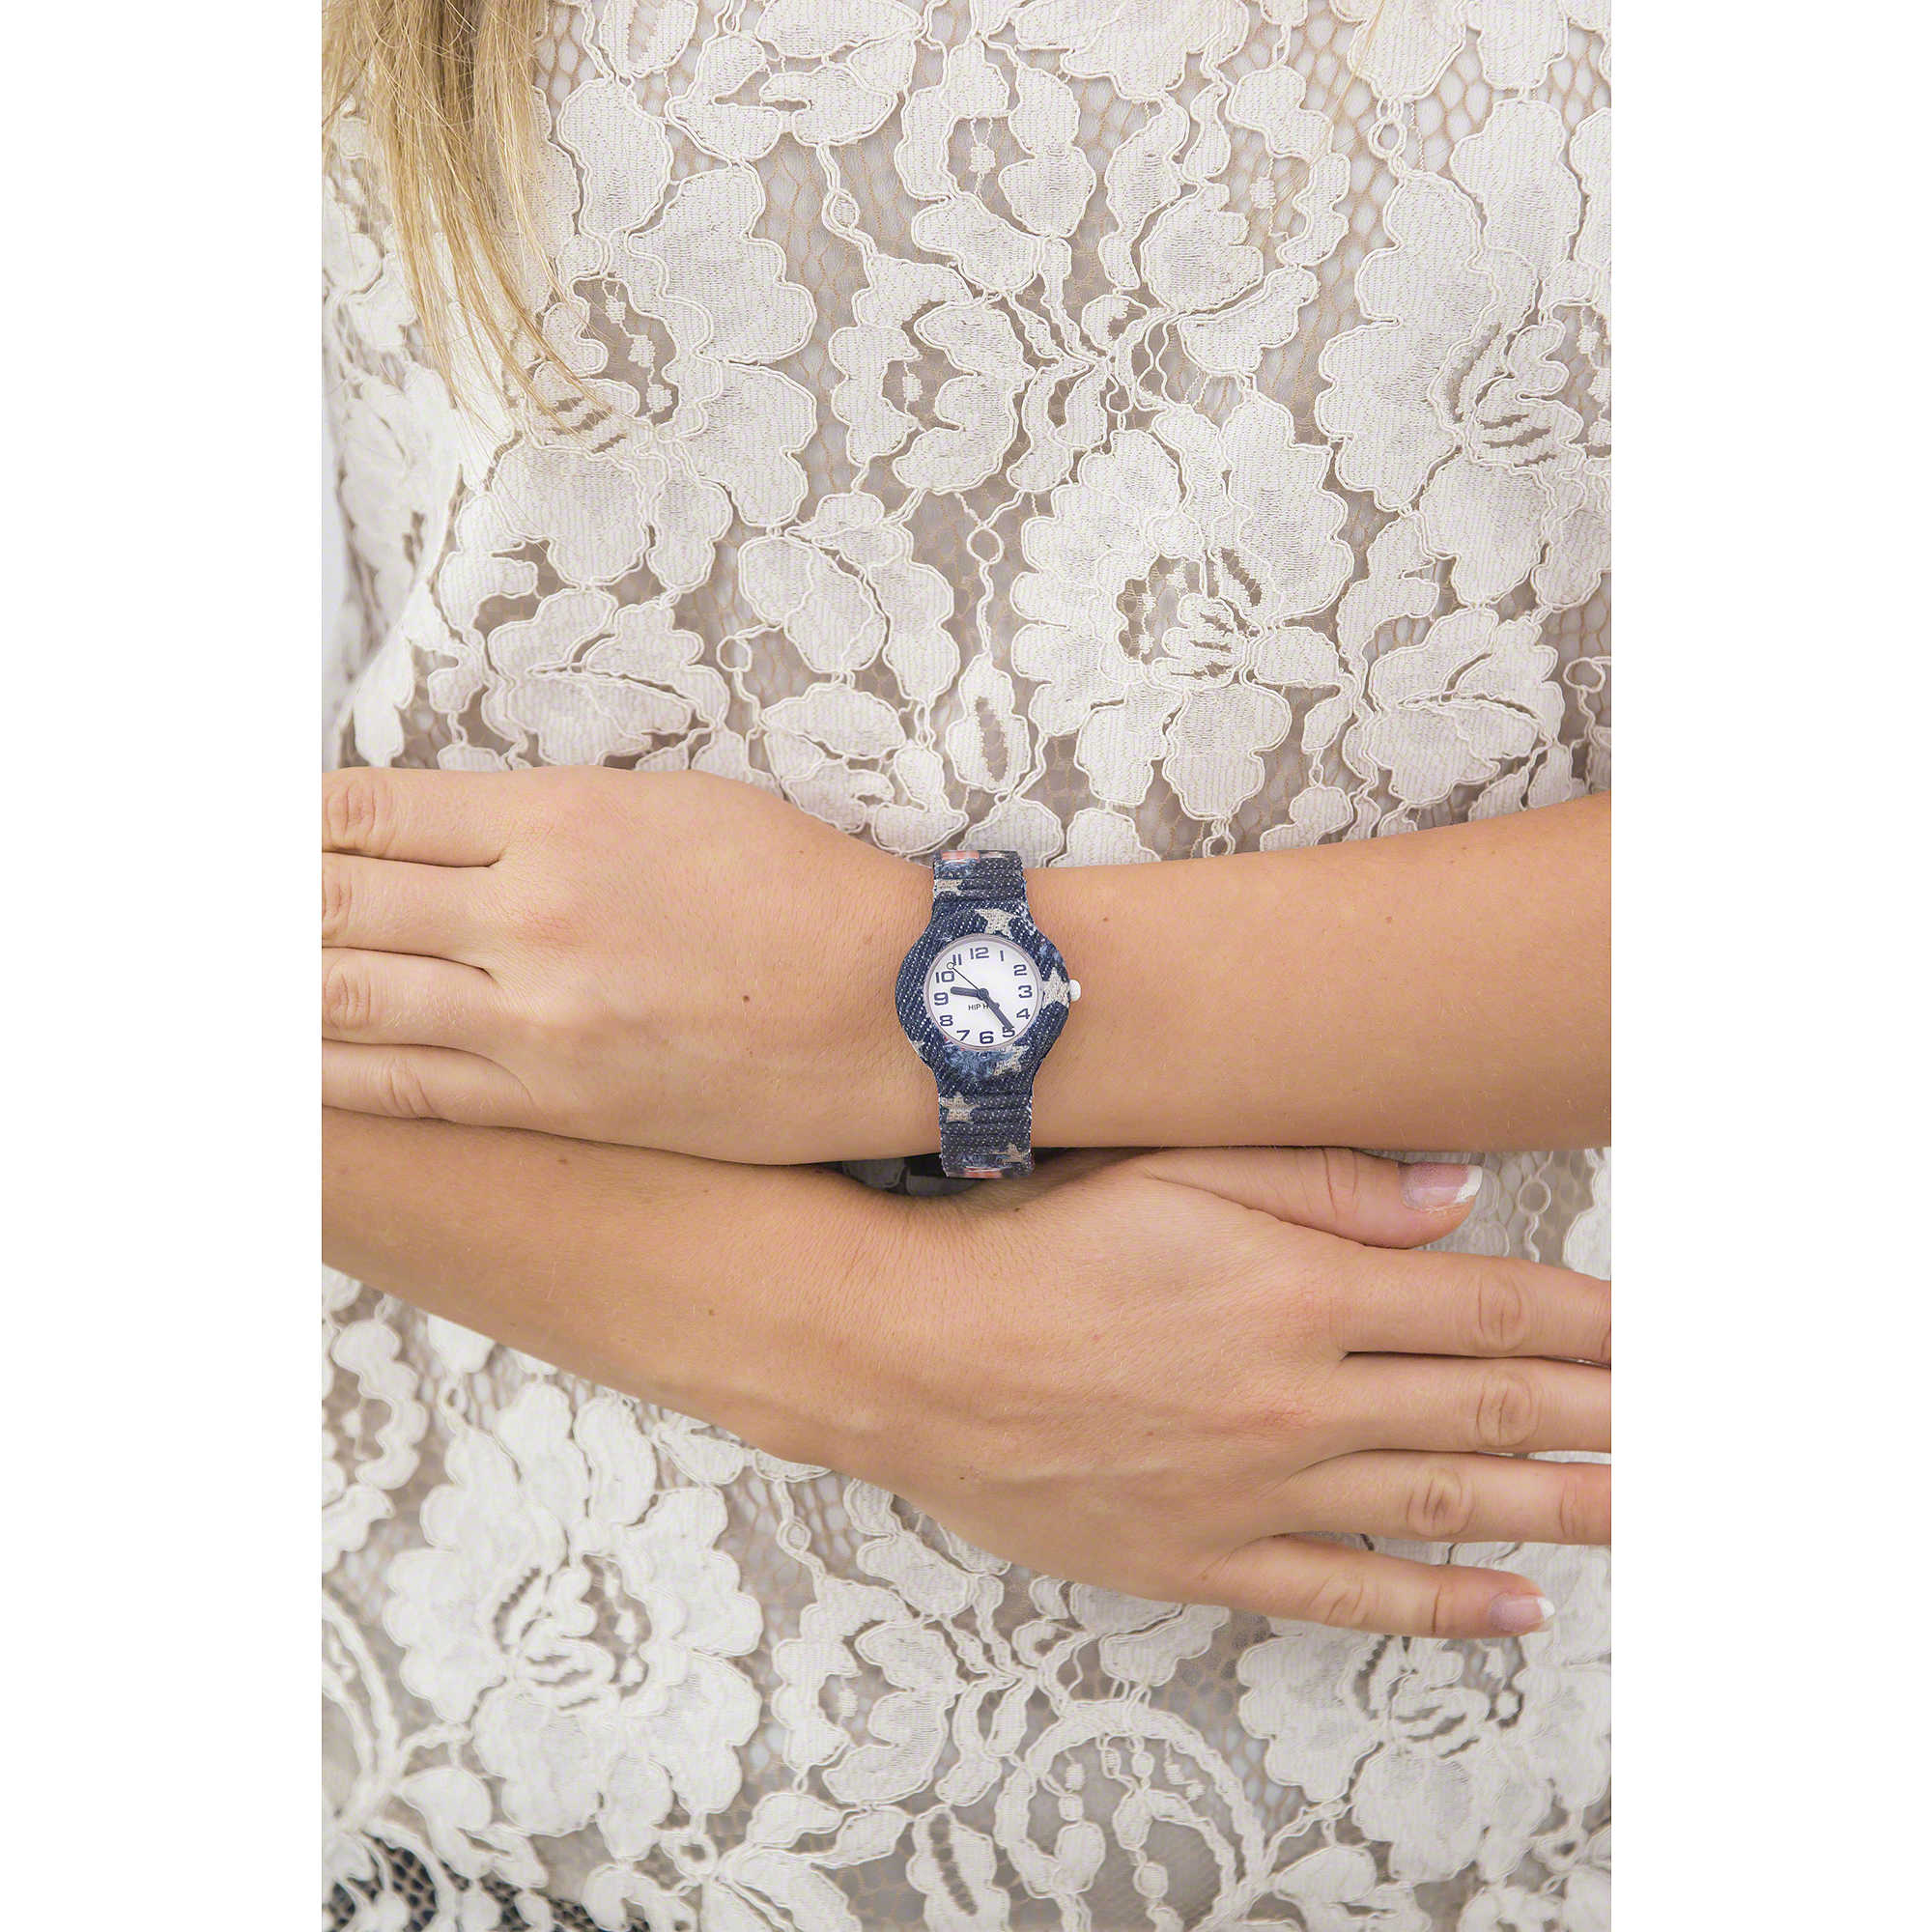 Solo 7ybfv6gy Jeans Donna Hwu0679 Hip Tempo Orologio Hop xCBWrode